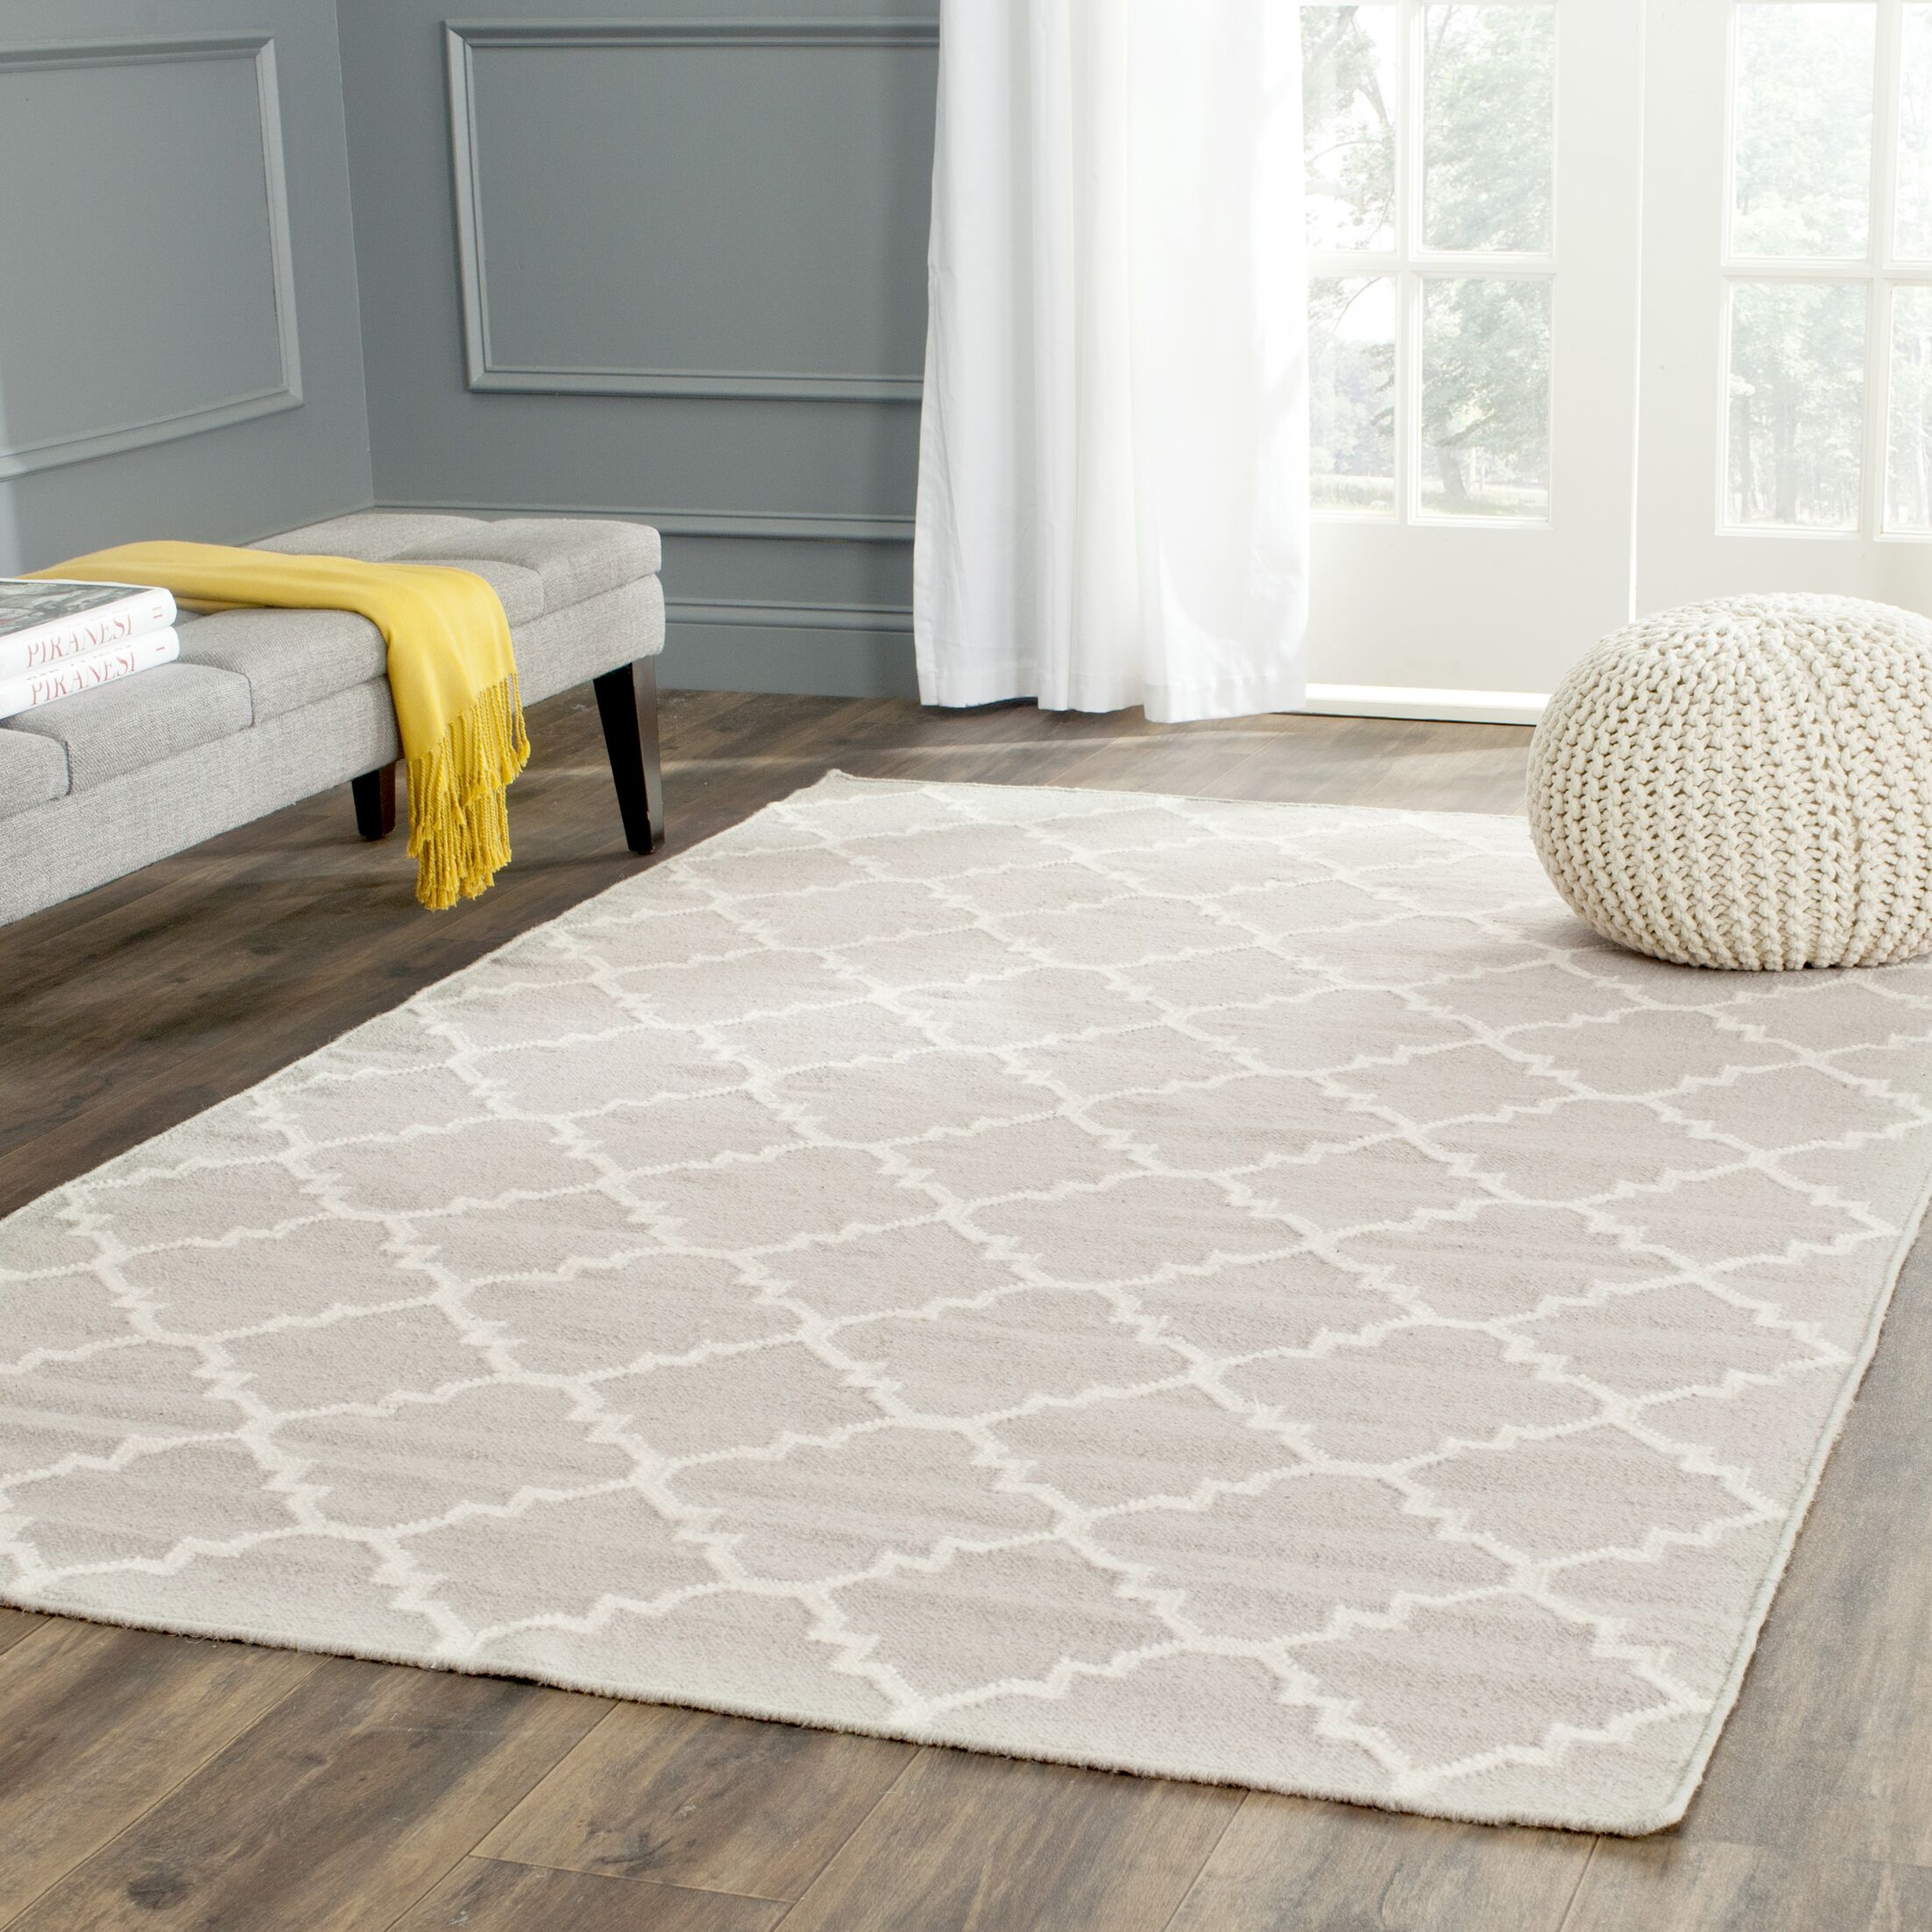 Dhurries Wool Ivory Area Rug Rug Size: Rectangle 6' x 9'